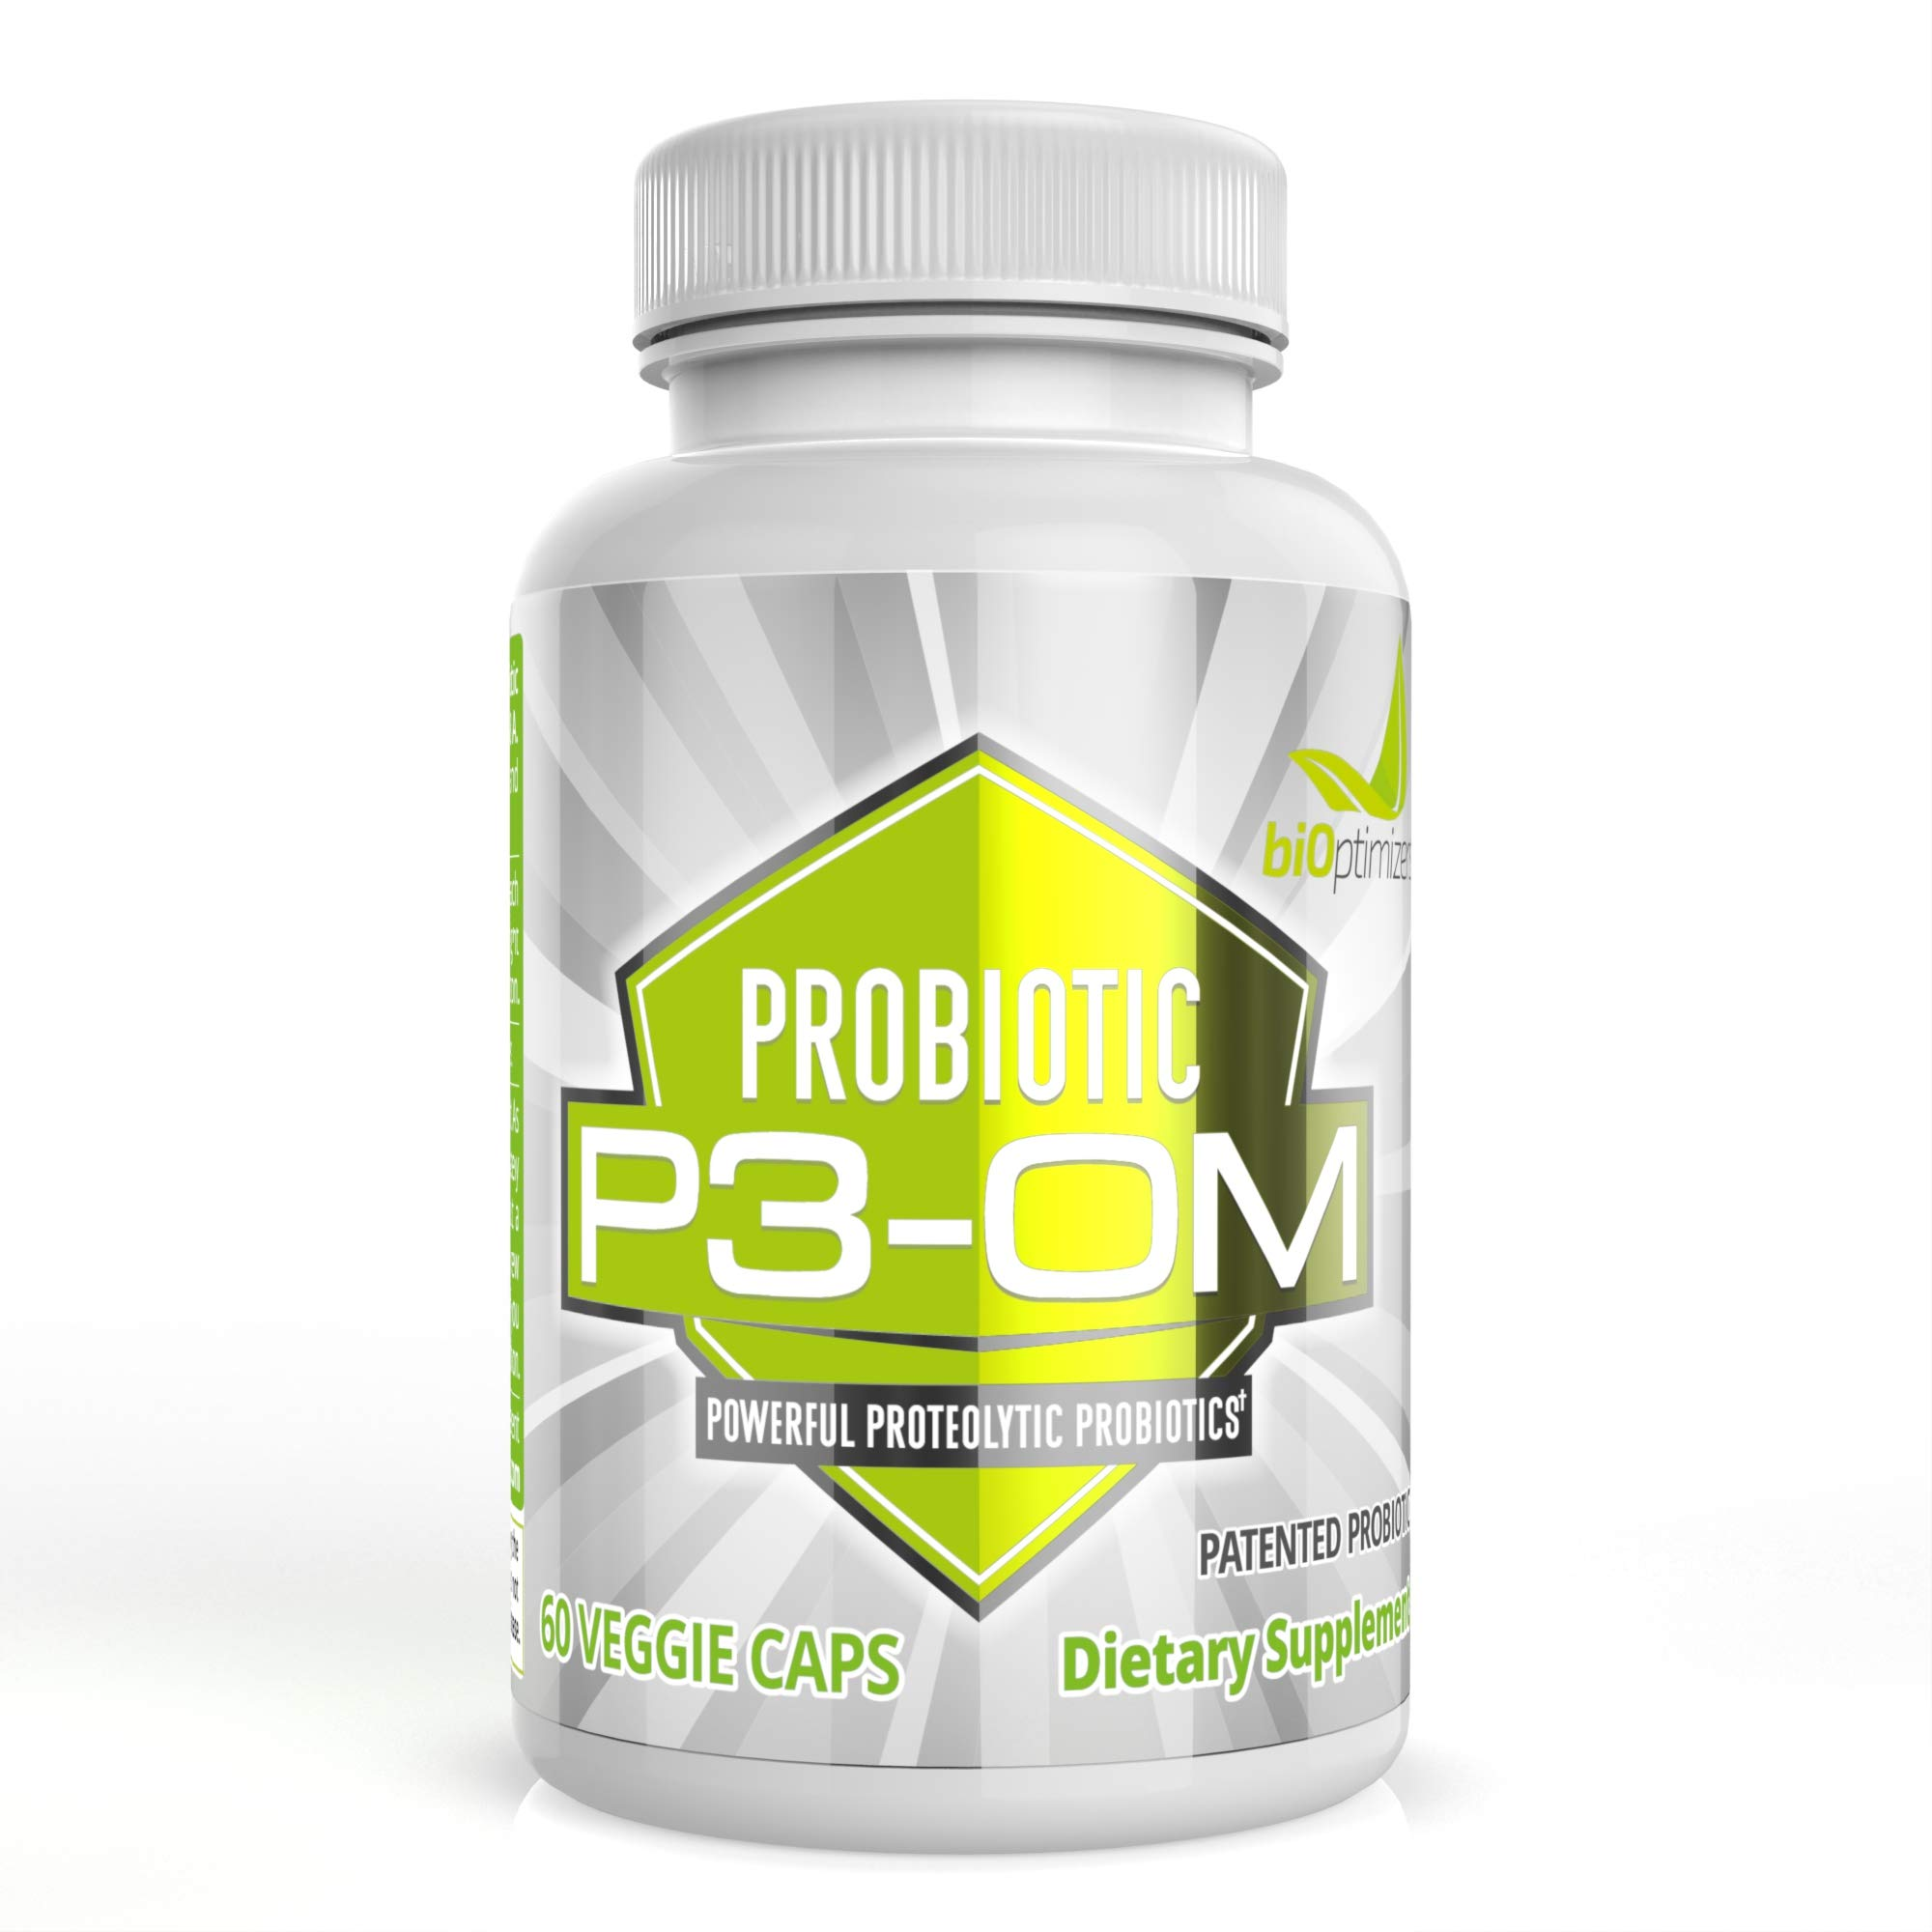 P3-OM - Friendly and Ferocious Probiotic for Women and Men - Patented Single Strain - Doctor-Formulated - No Refrigeration Needed - Boosts Immunity - Supports Digestive Health (120 Capsules)